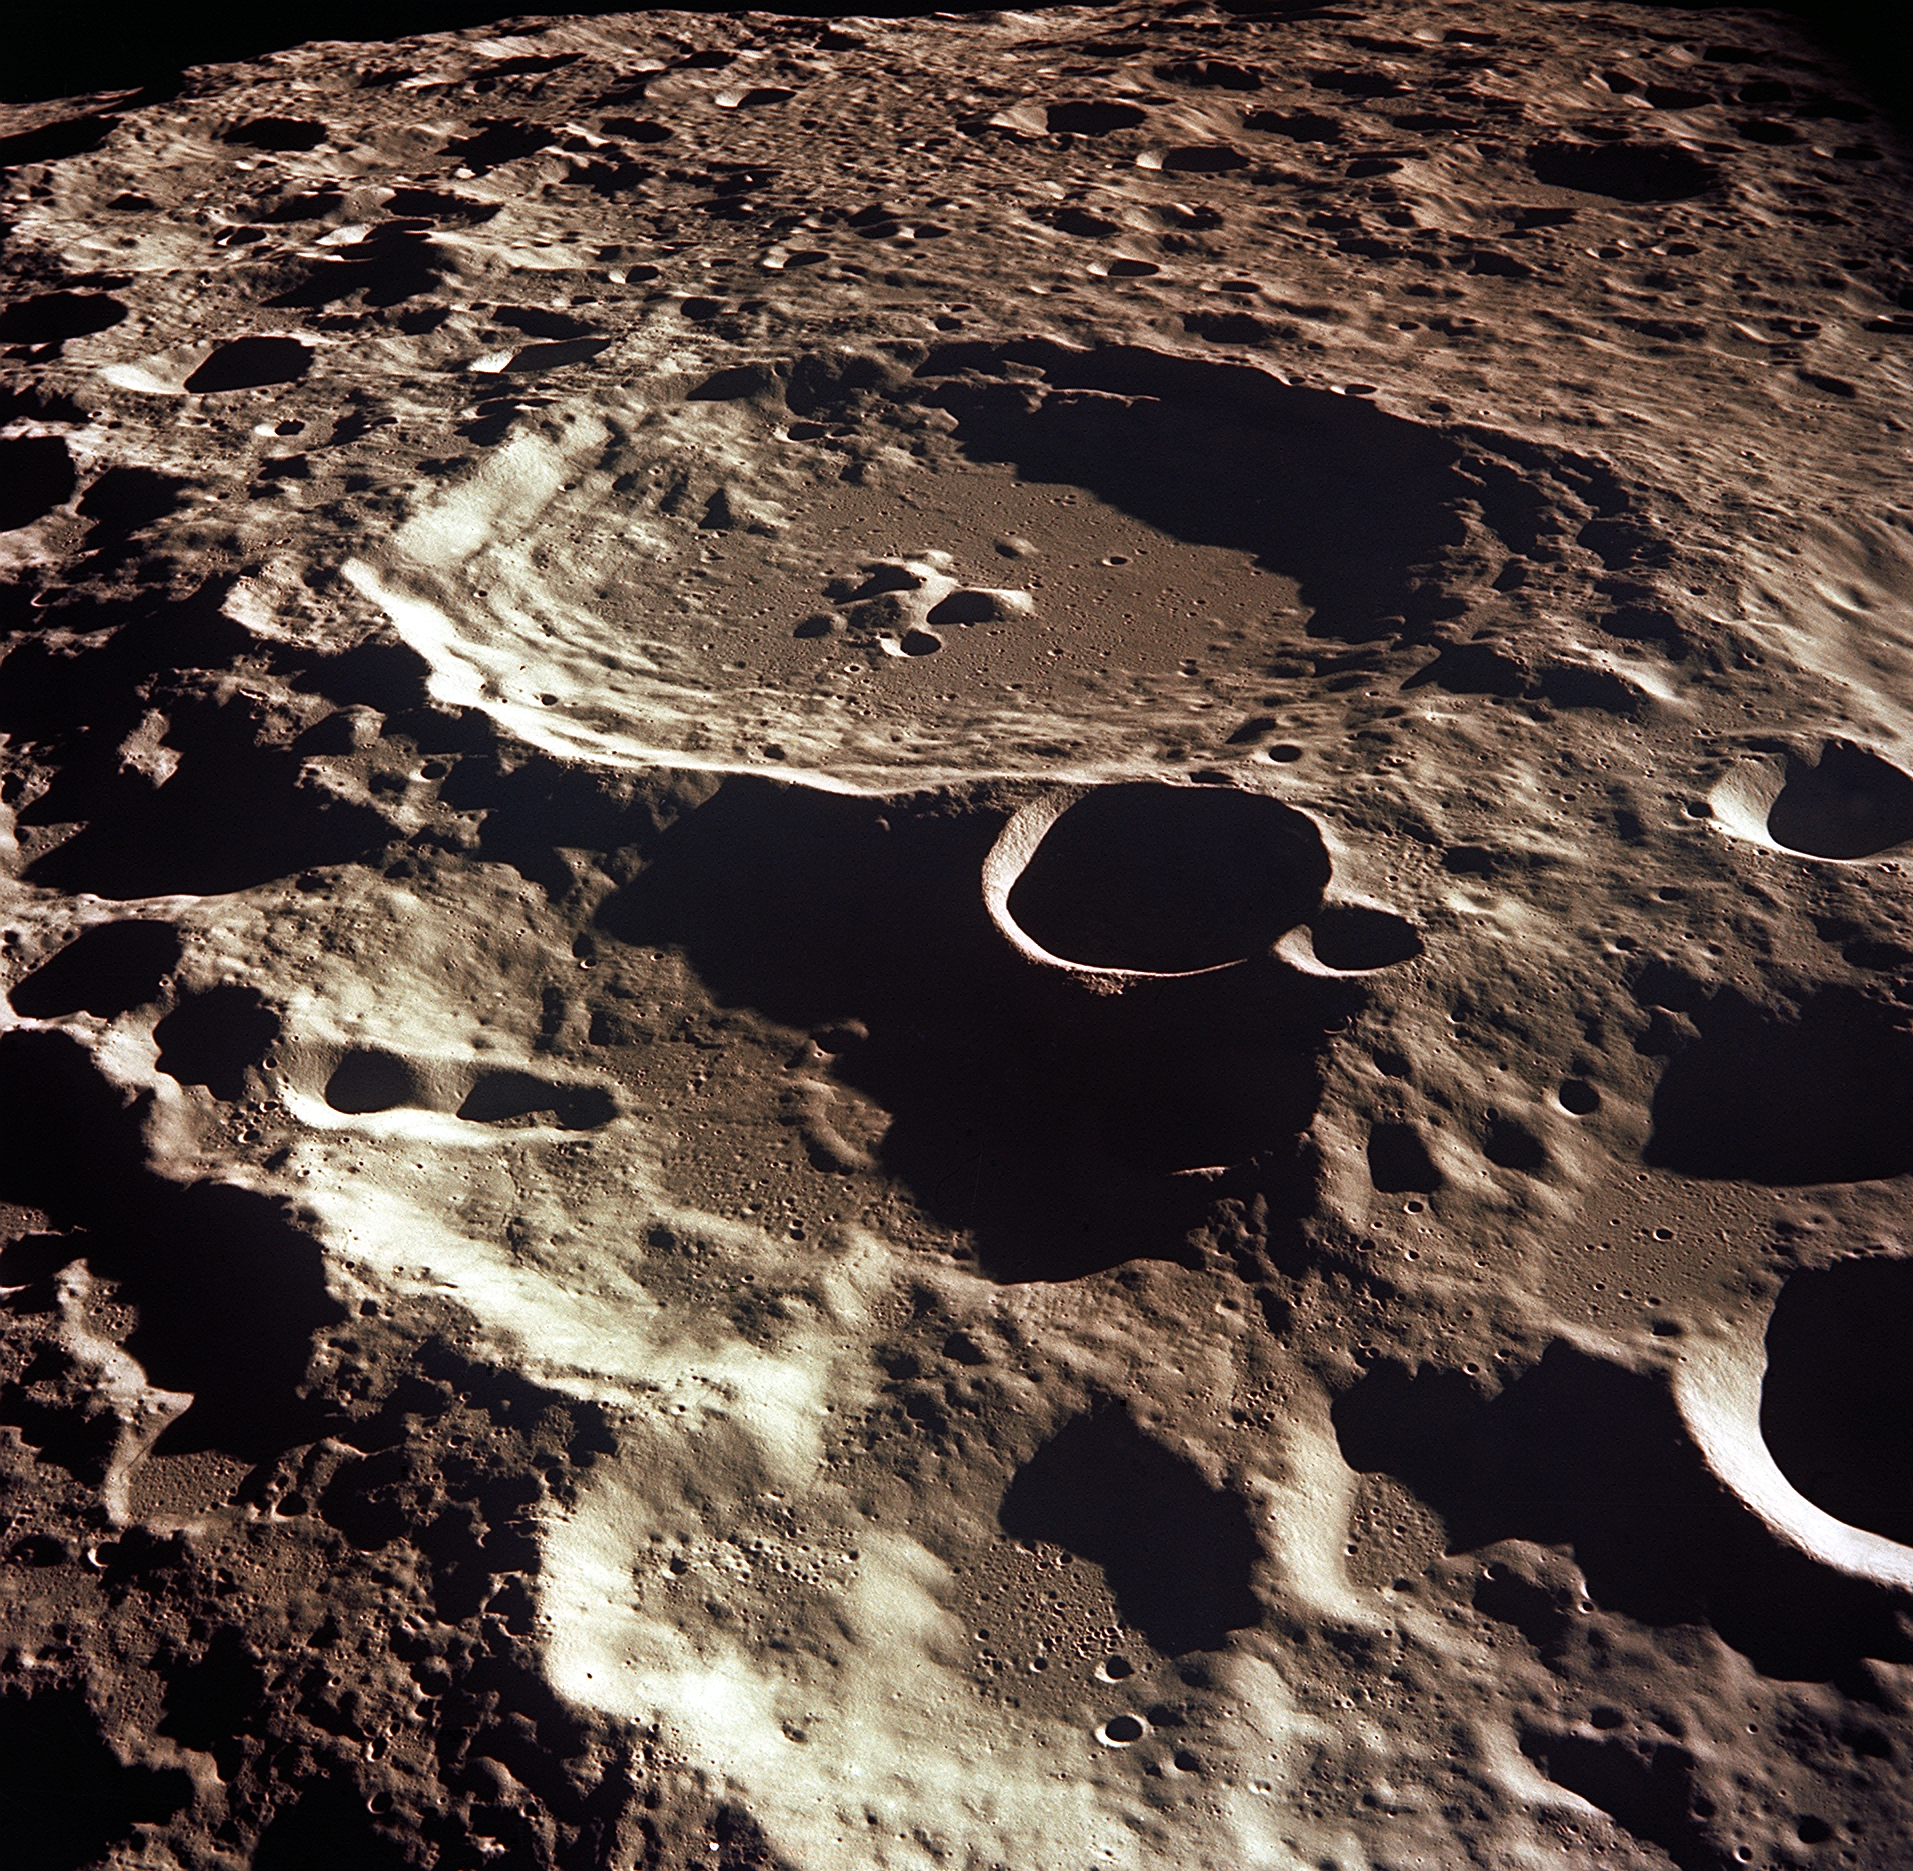 Crater Daedalus on the moon. Credit: NASA